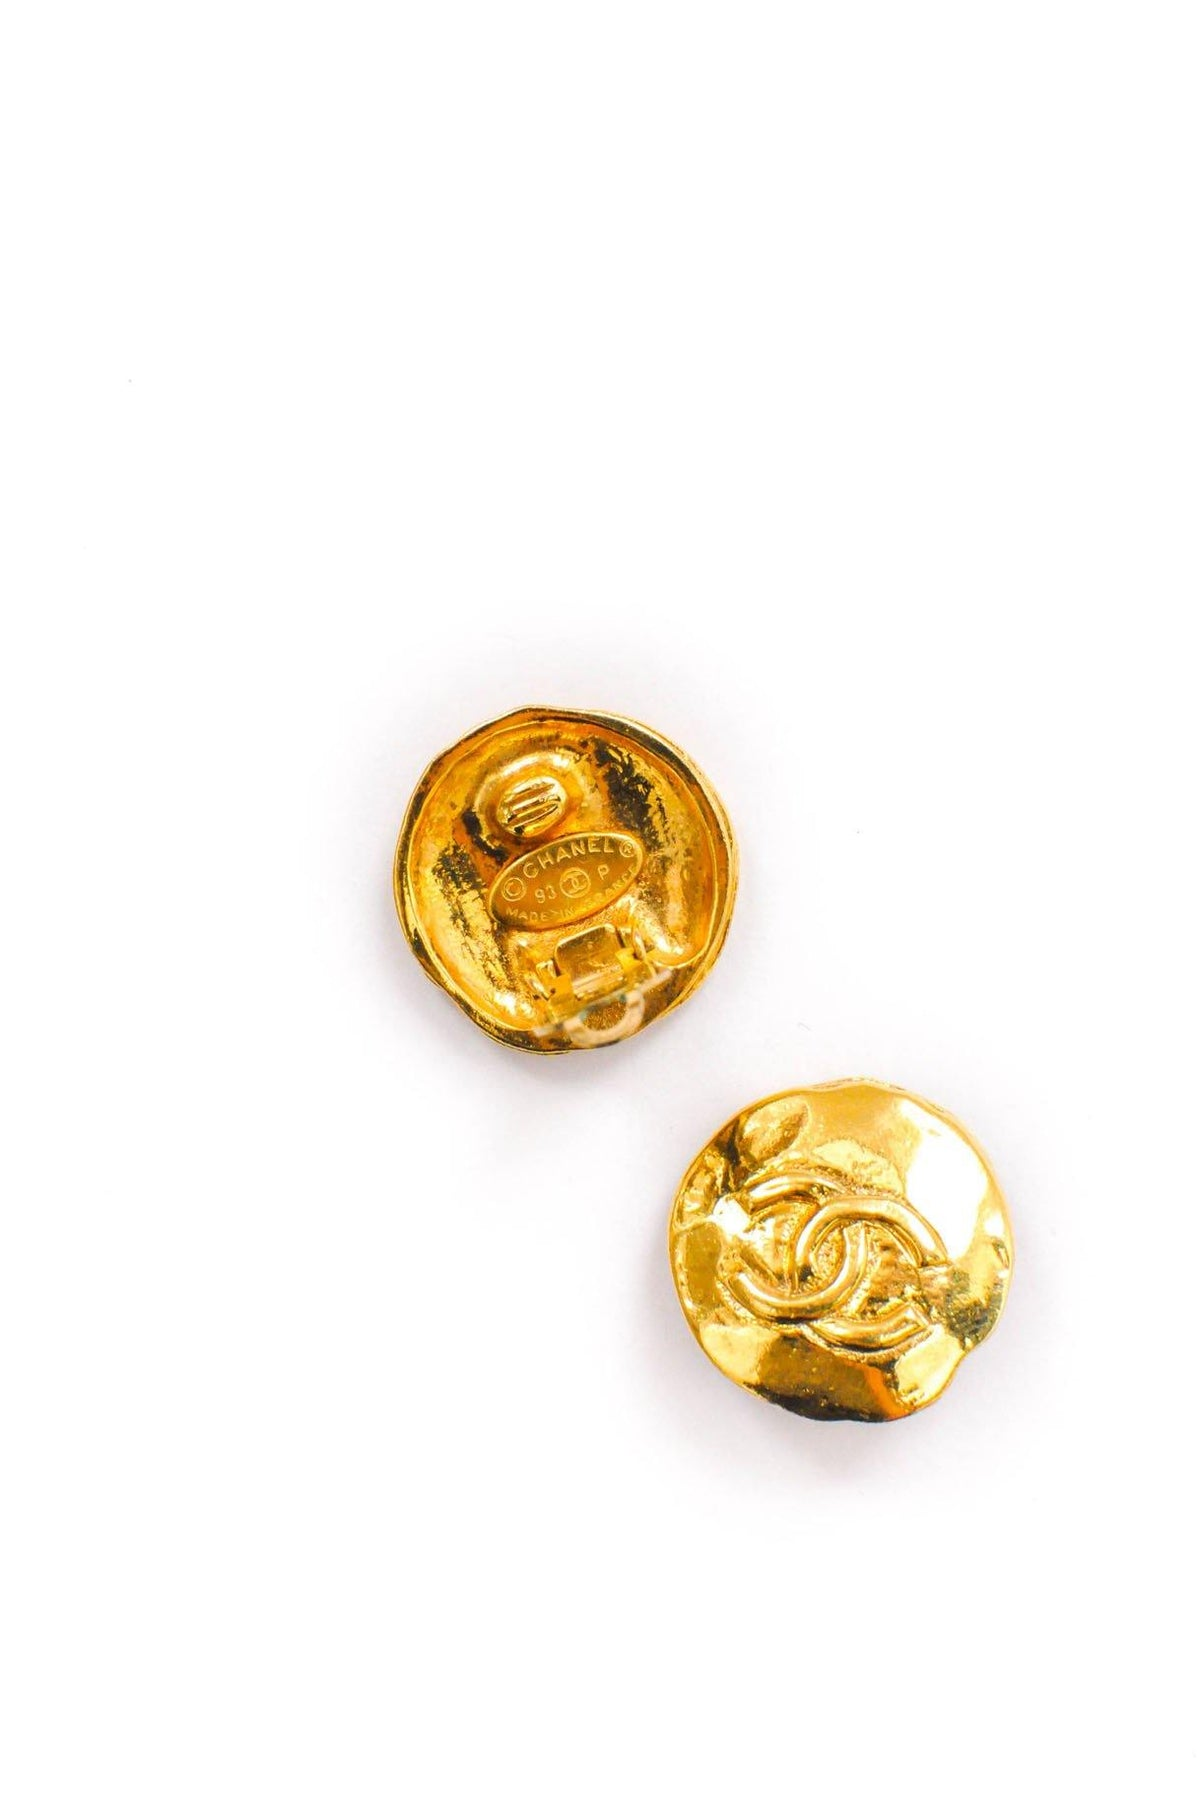 Vintage Chanel Coin Earrings from Sweet and Spark